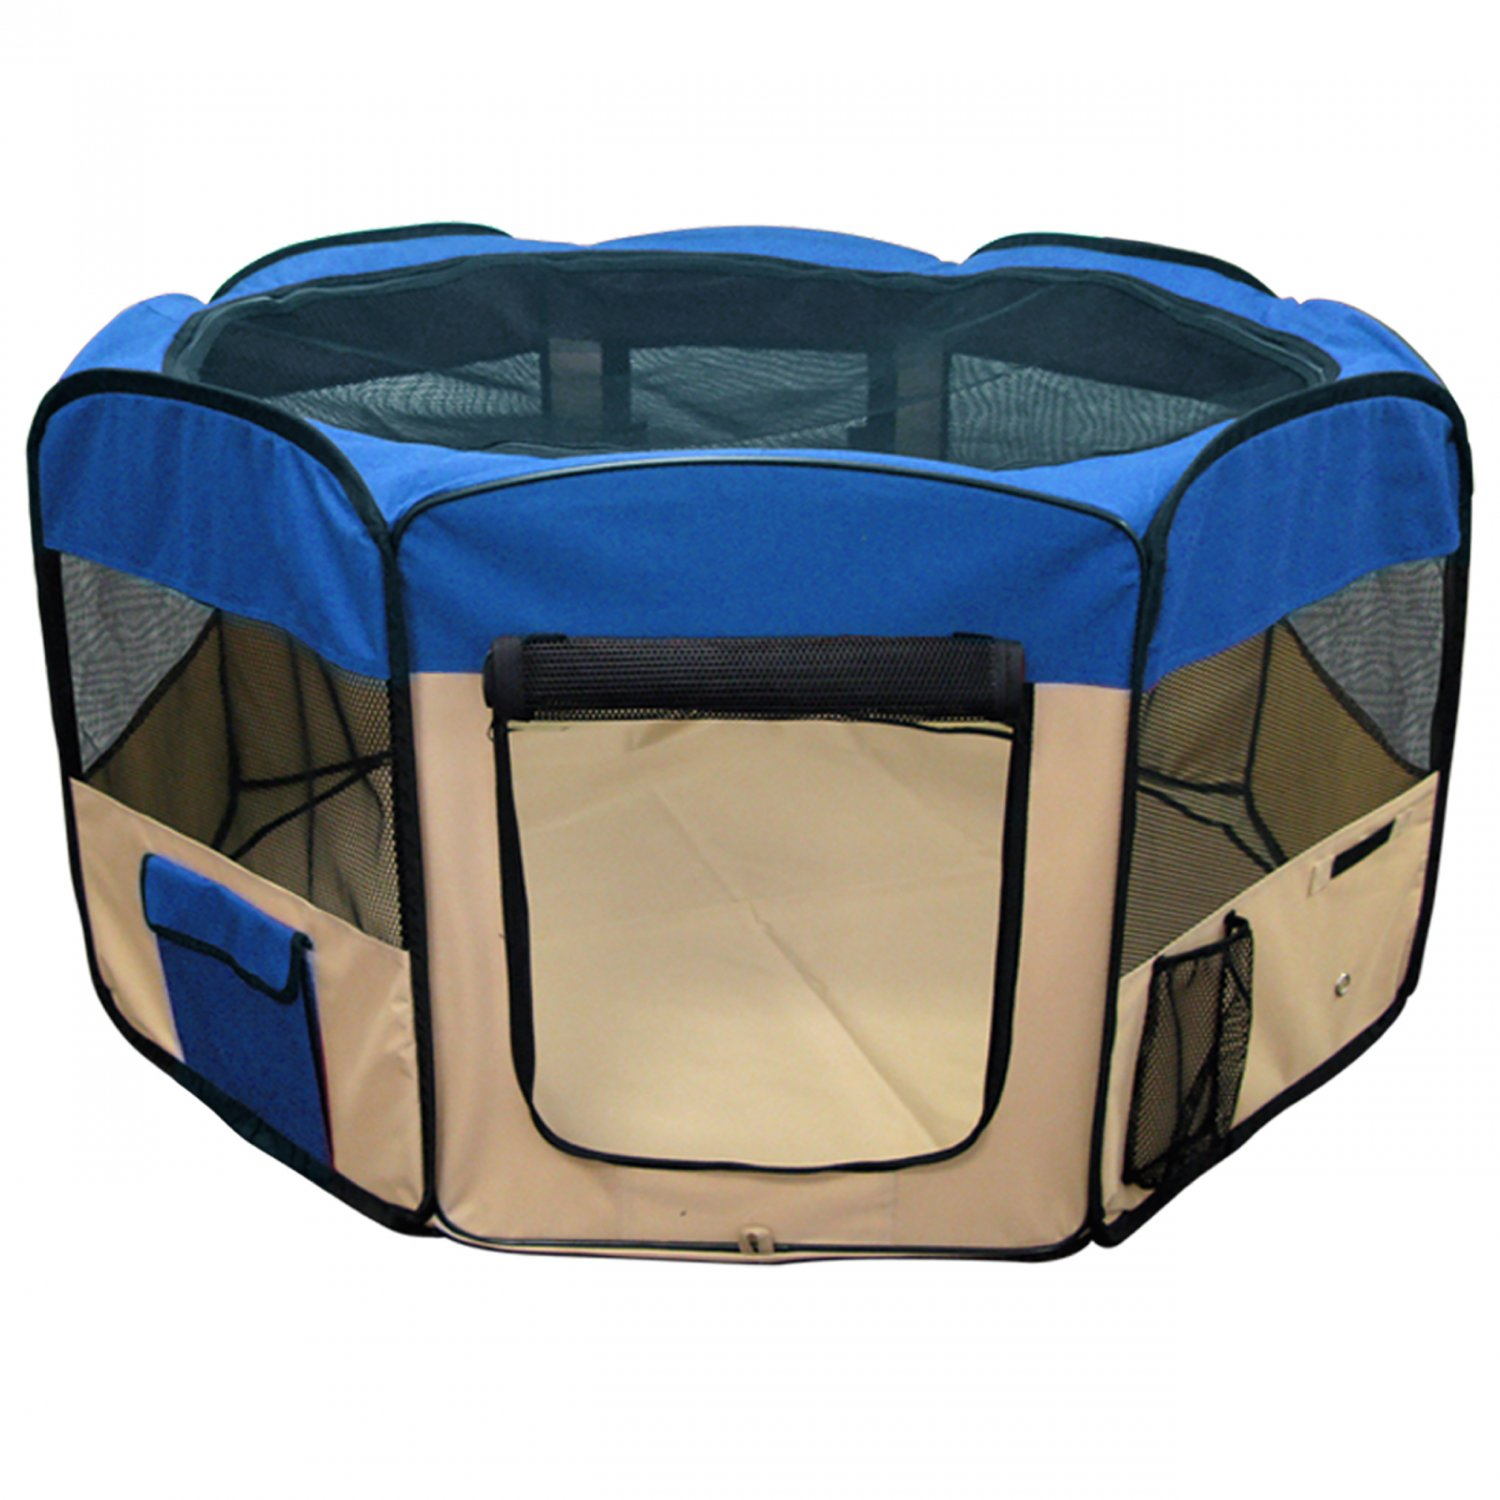 "Pet Playpen 45"" Exercise Puppy Dog Pen Kennel Folding Design Easy Storage Blue"